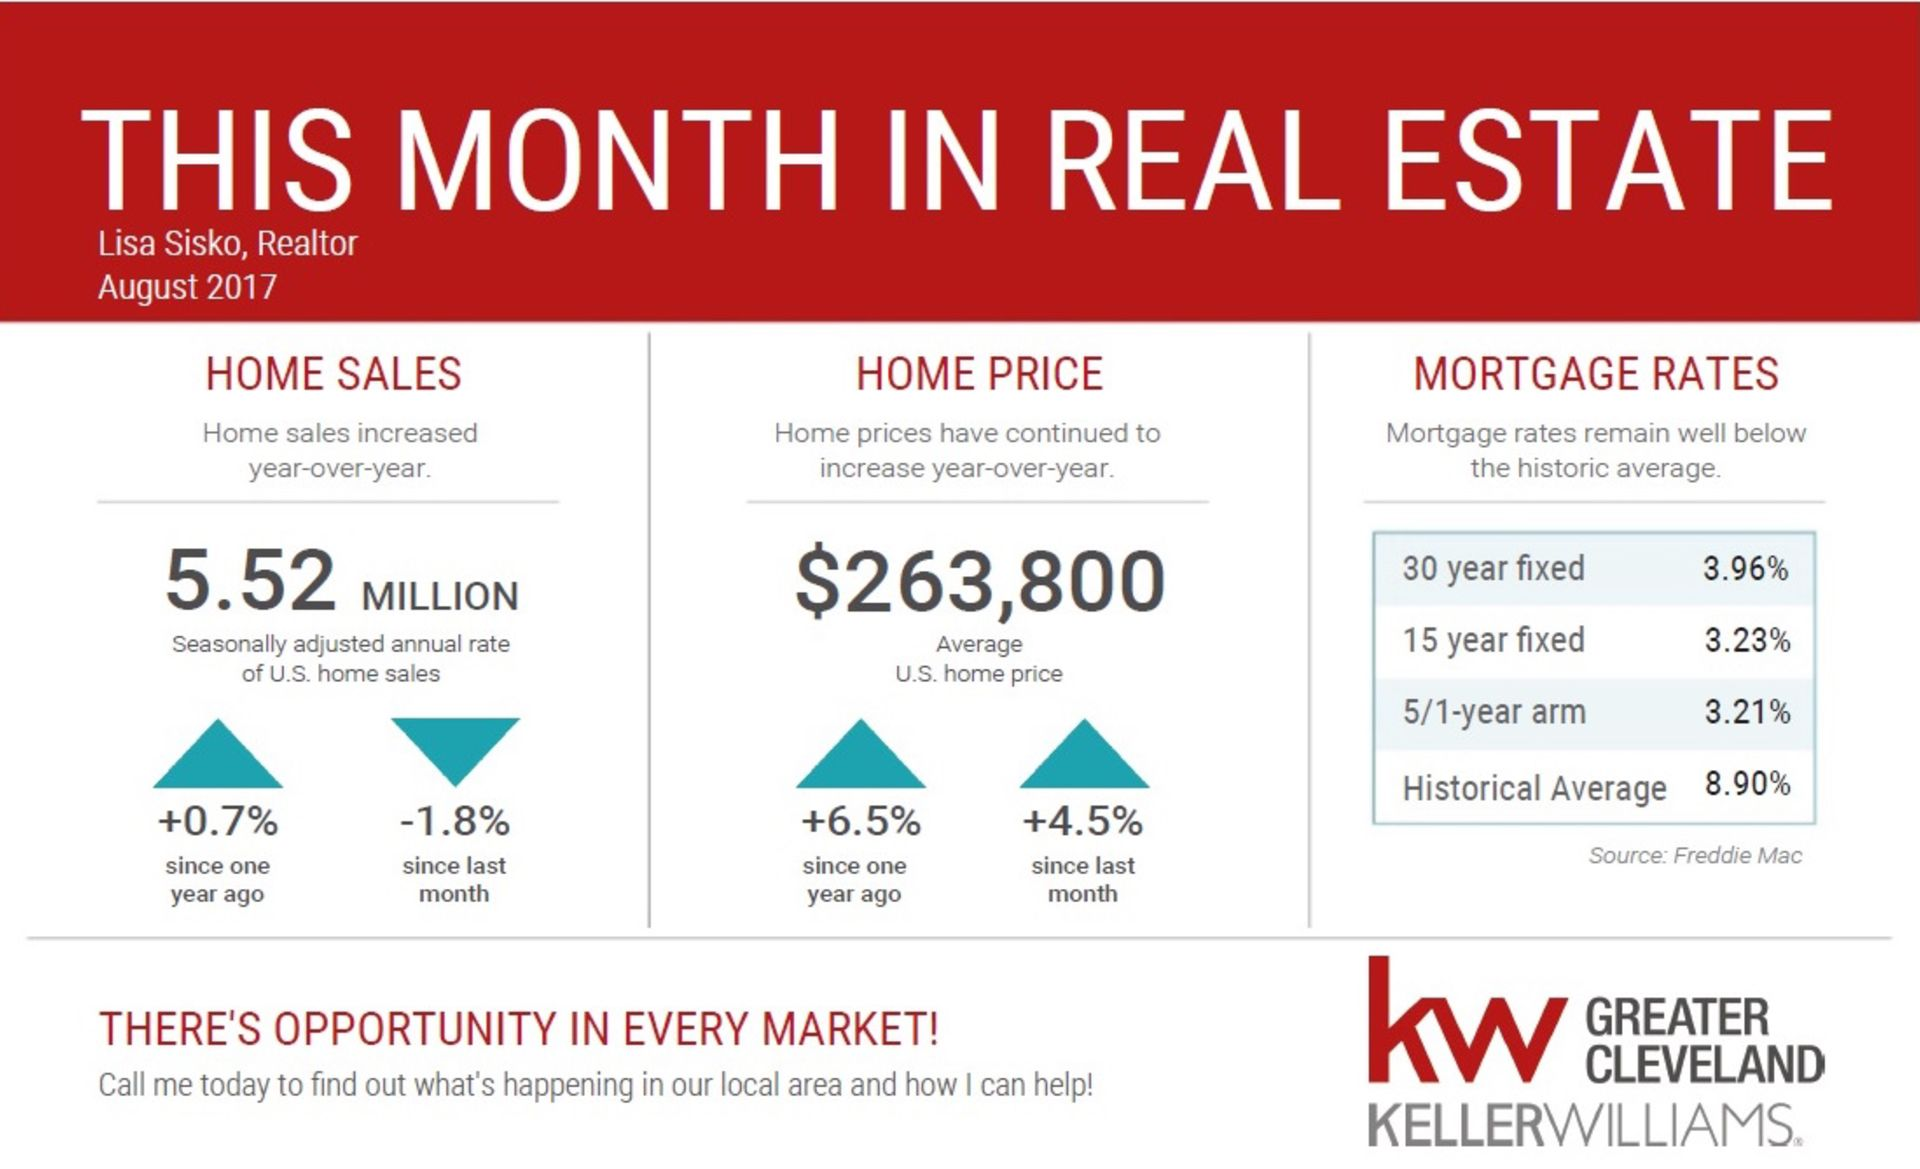 This Month in Real Estate – National Statistics for August 2017